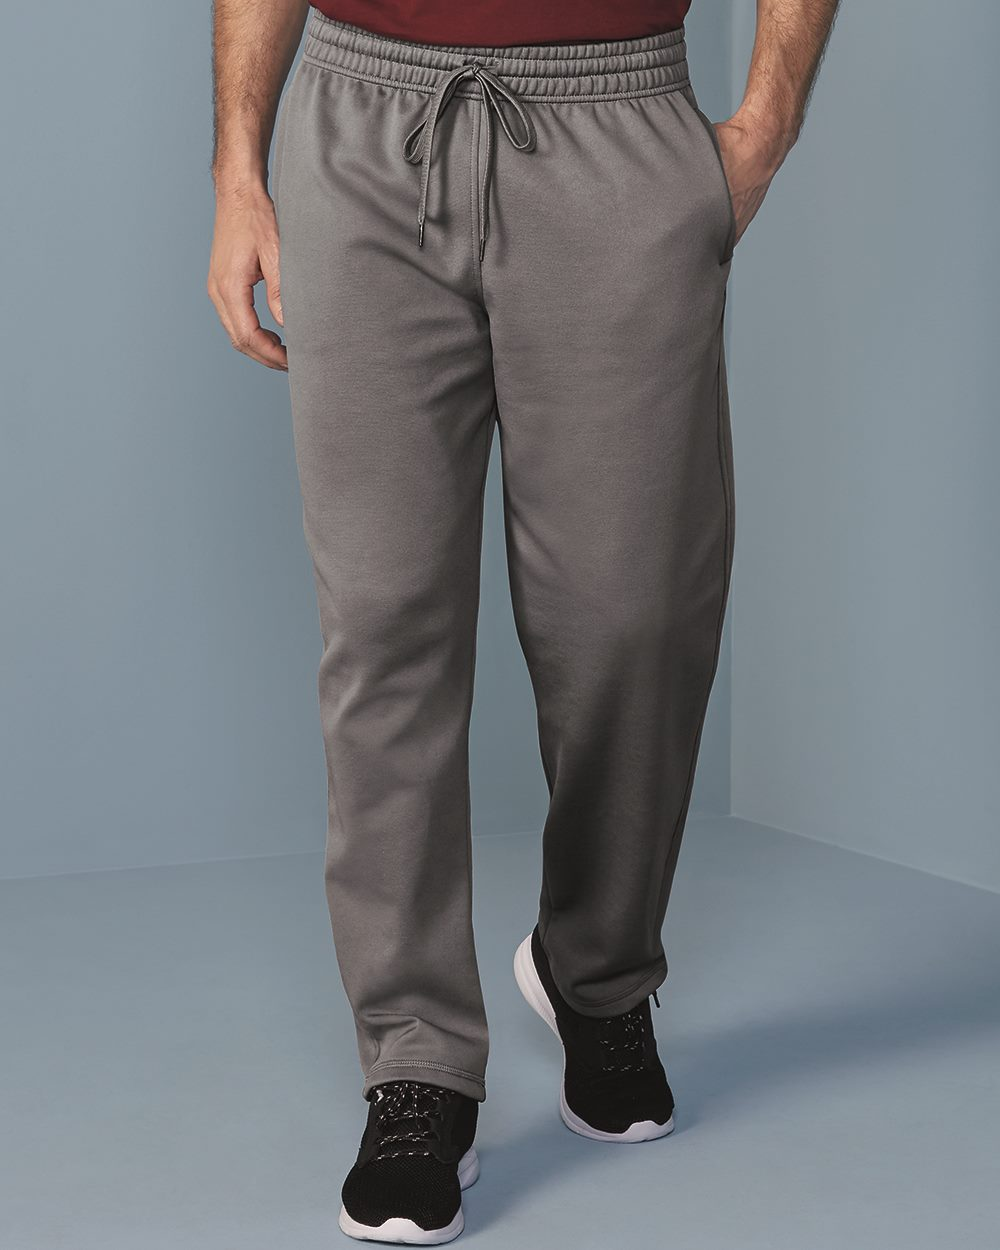 Gildan 99400 - Performance Tech Pants